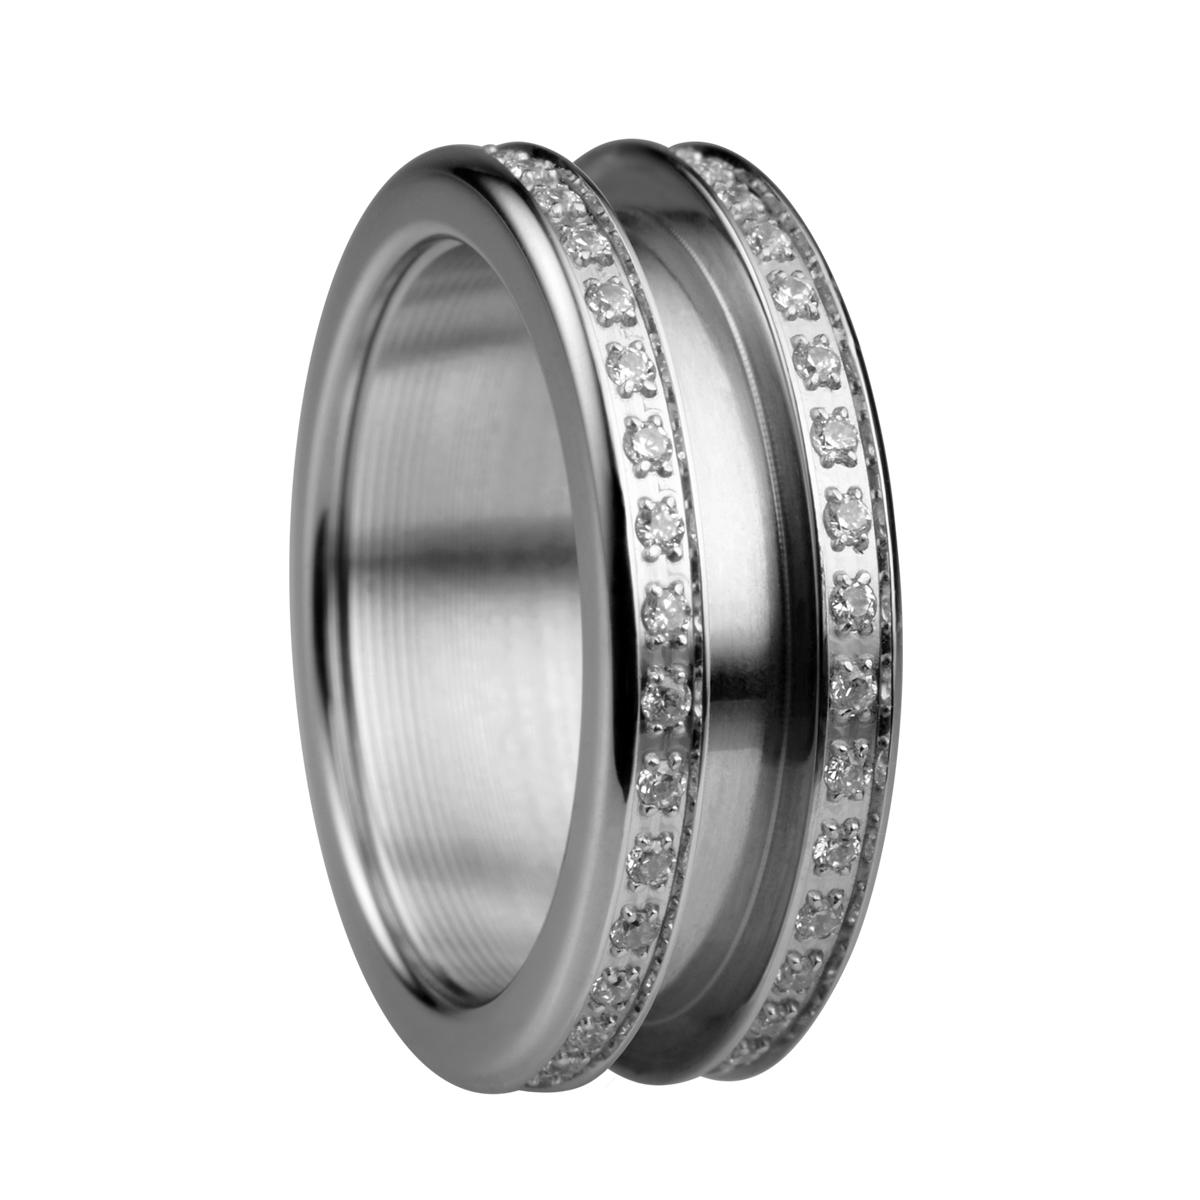 Bering Outer Ring 5231753 1